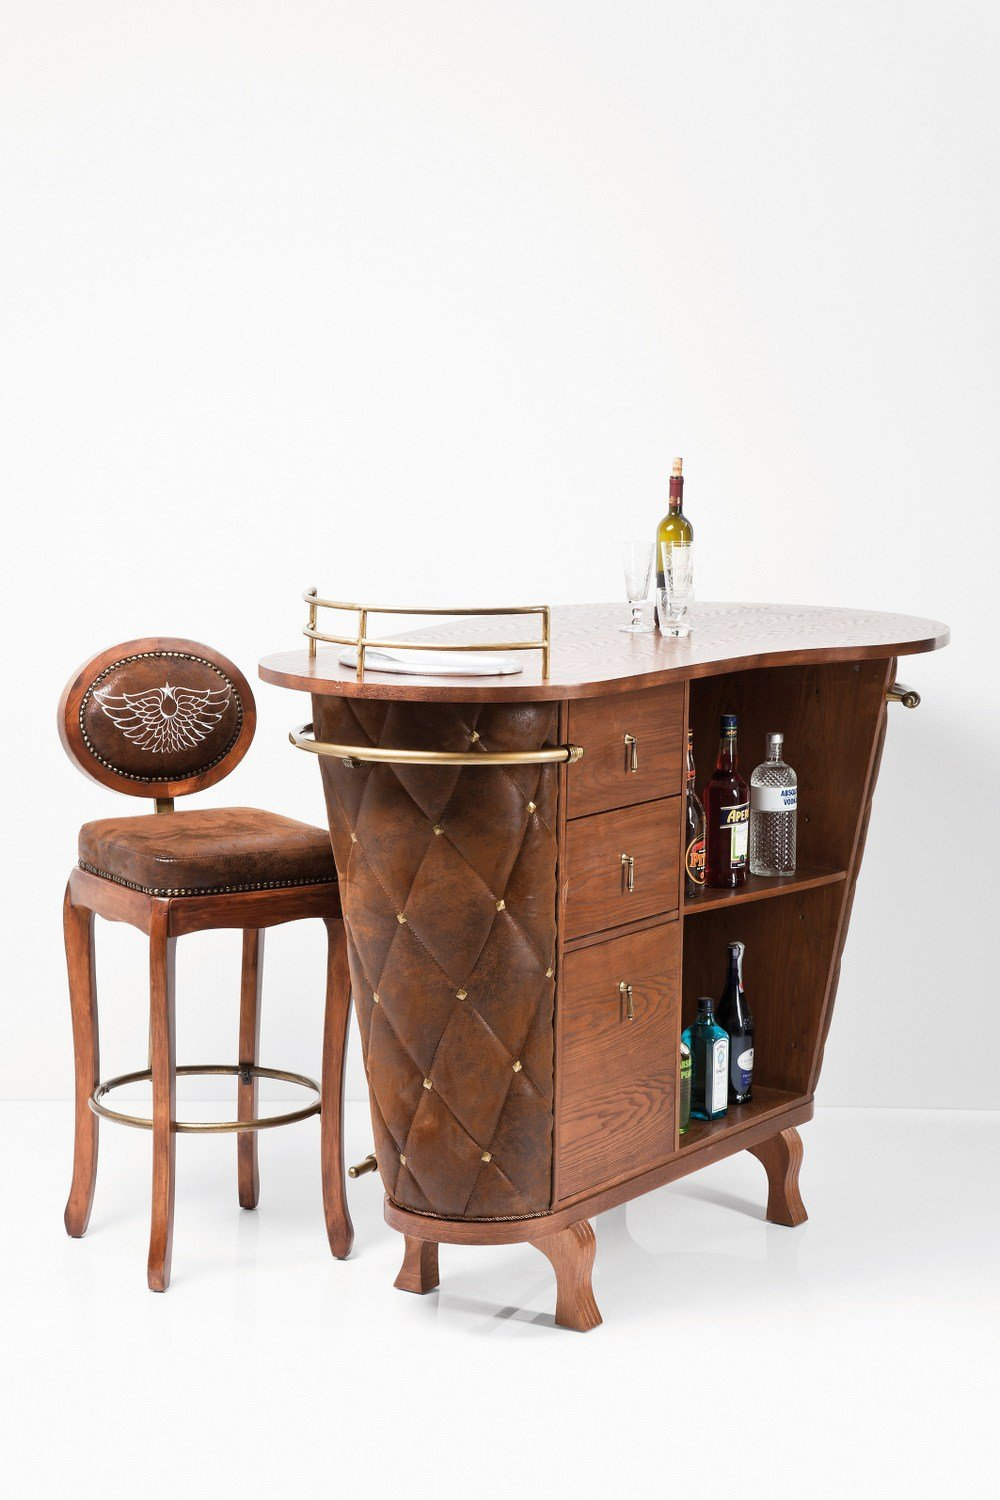 rockstar vintage meuble bar by kare design. Black Bedroom Furniture Sets. Home Design Ideas